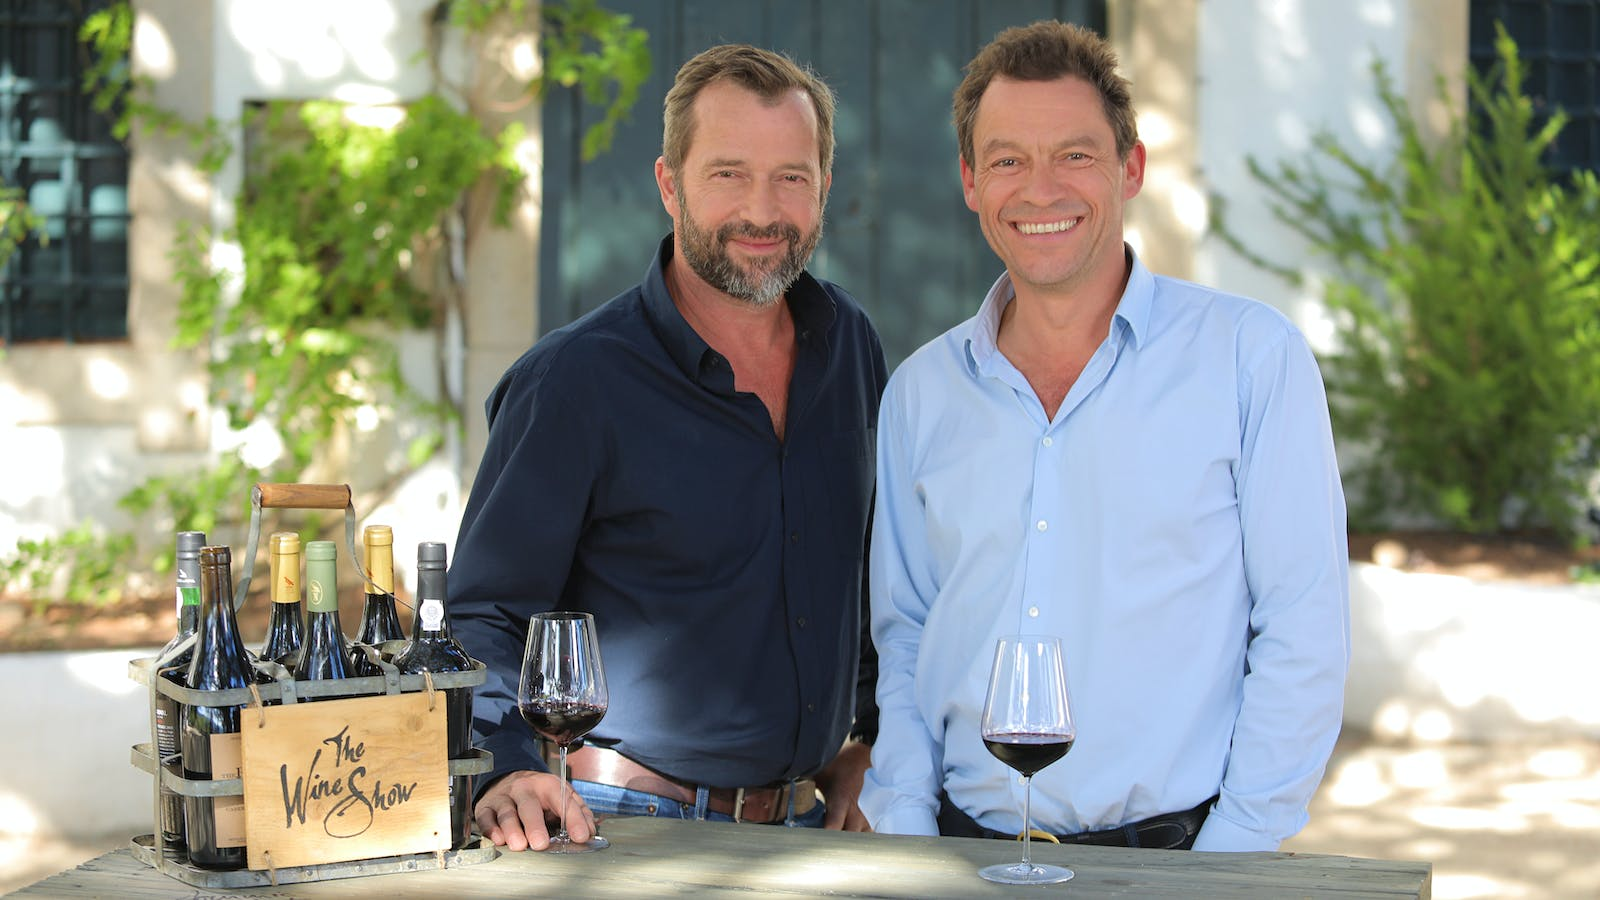 James Purefoy, Dominic West, Matthew Goode and Matthew Rhys Head to Portugal for 'Wine Show' Season 3